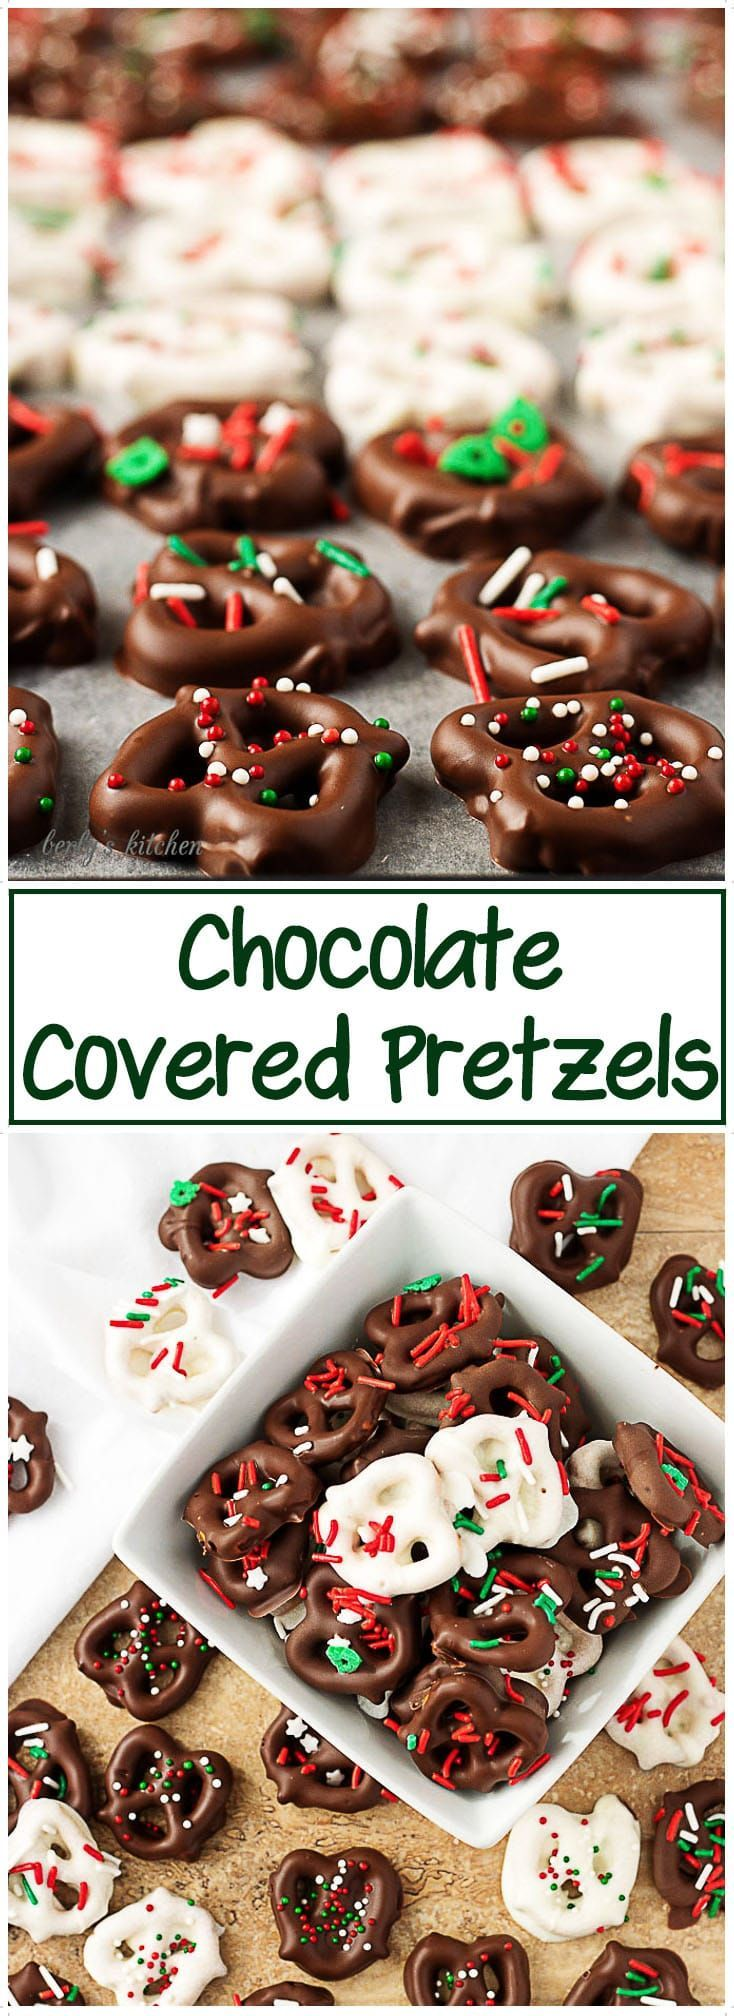 This holiday season, try our chocolate covered pretzels recipe. A salty, crunchy pretzel smothered in smooth chocolate and topped with colorful sprinkles! #candy #chocolate #Christmas #treats #pretzels  via @berlyskitchen